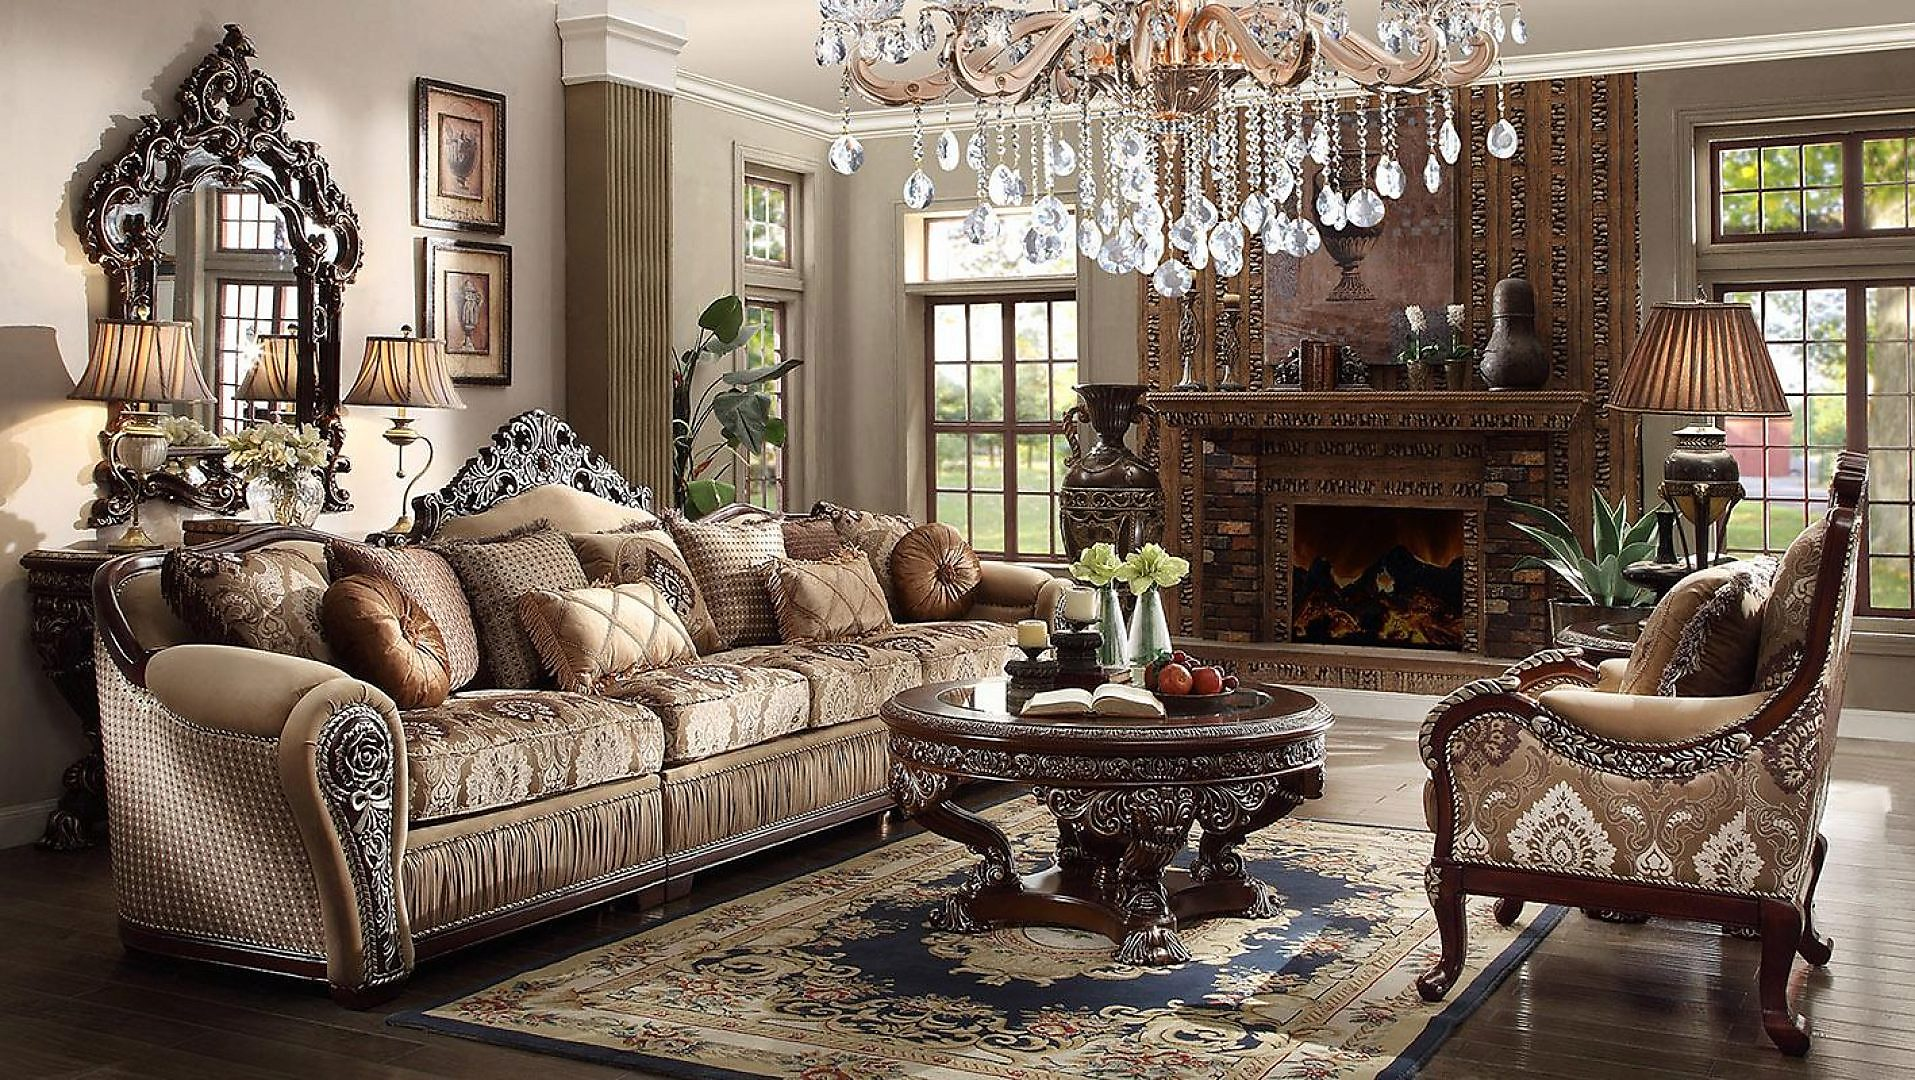 Traditional HD-1632 Sectional Sofa w/2 End Tables Living Room Set 6Pcs by Homey Design